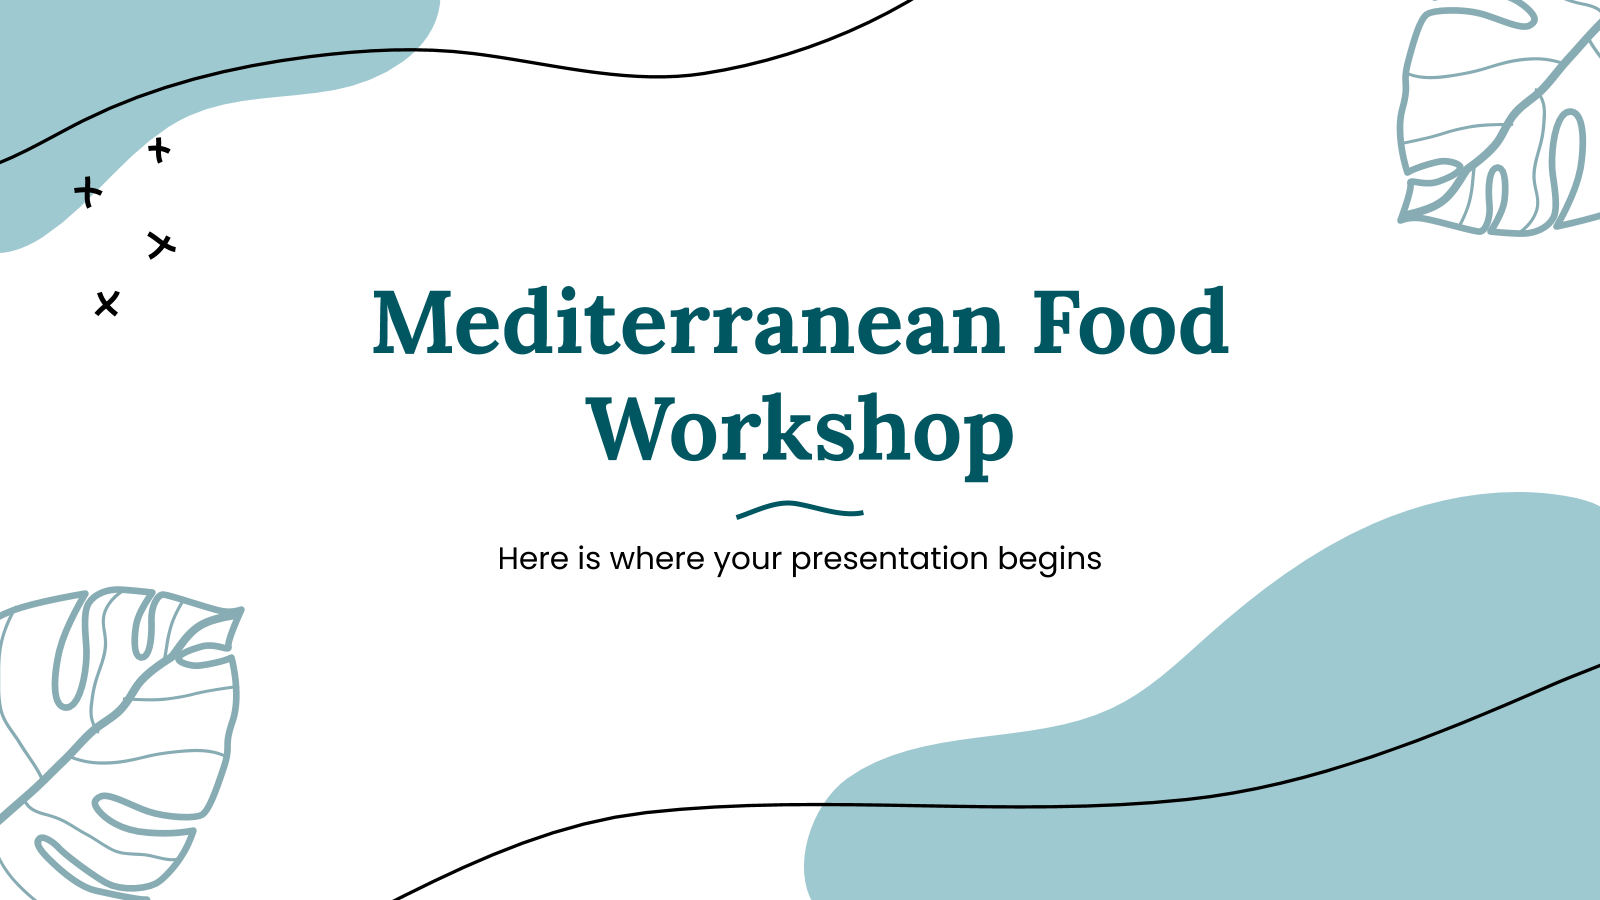 Mediterranean Food Workshop presentation template